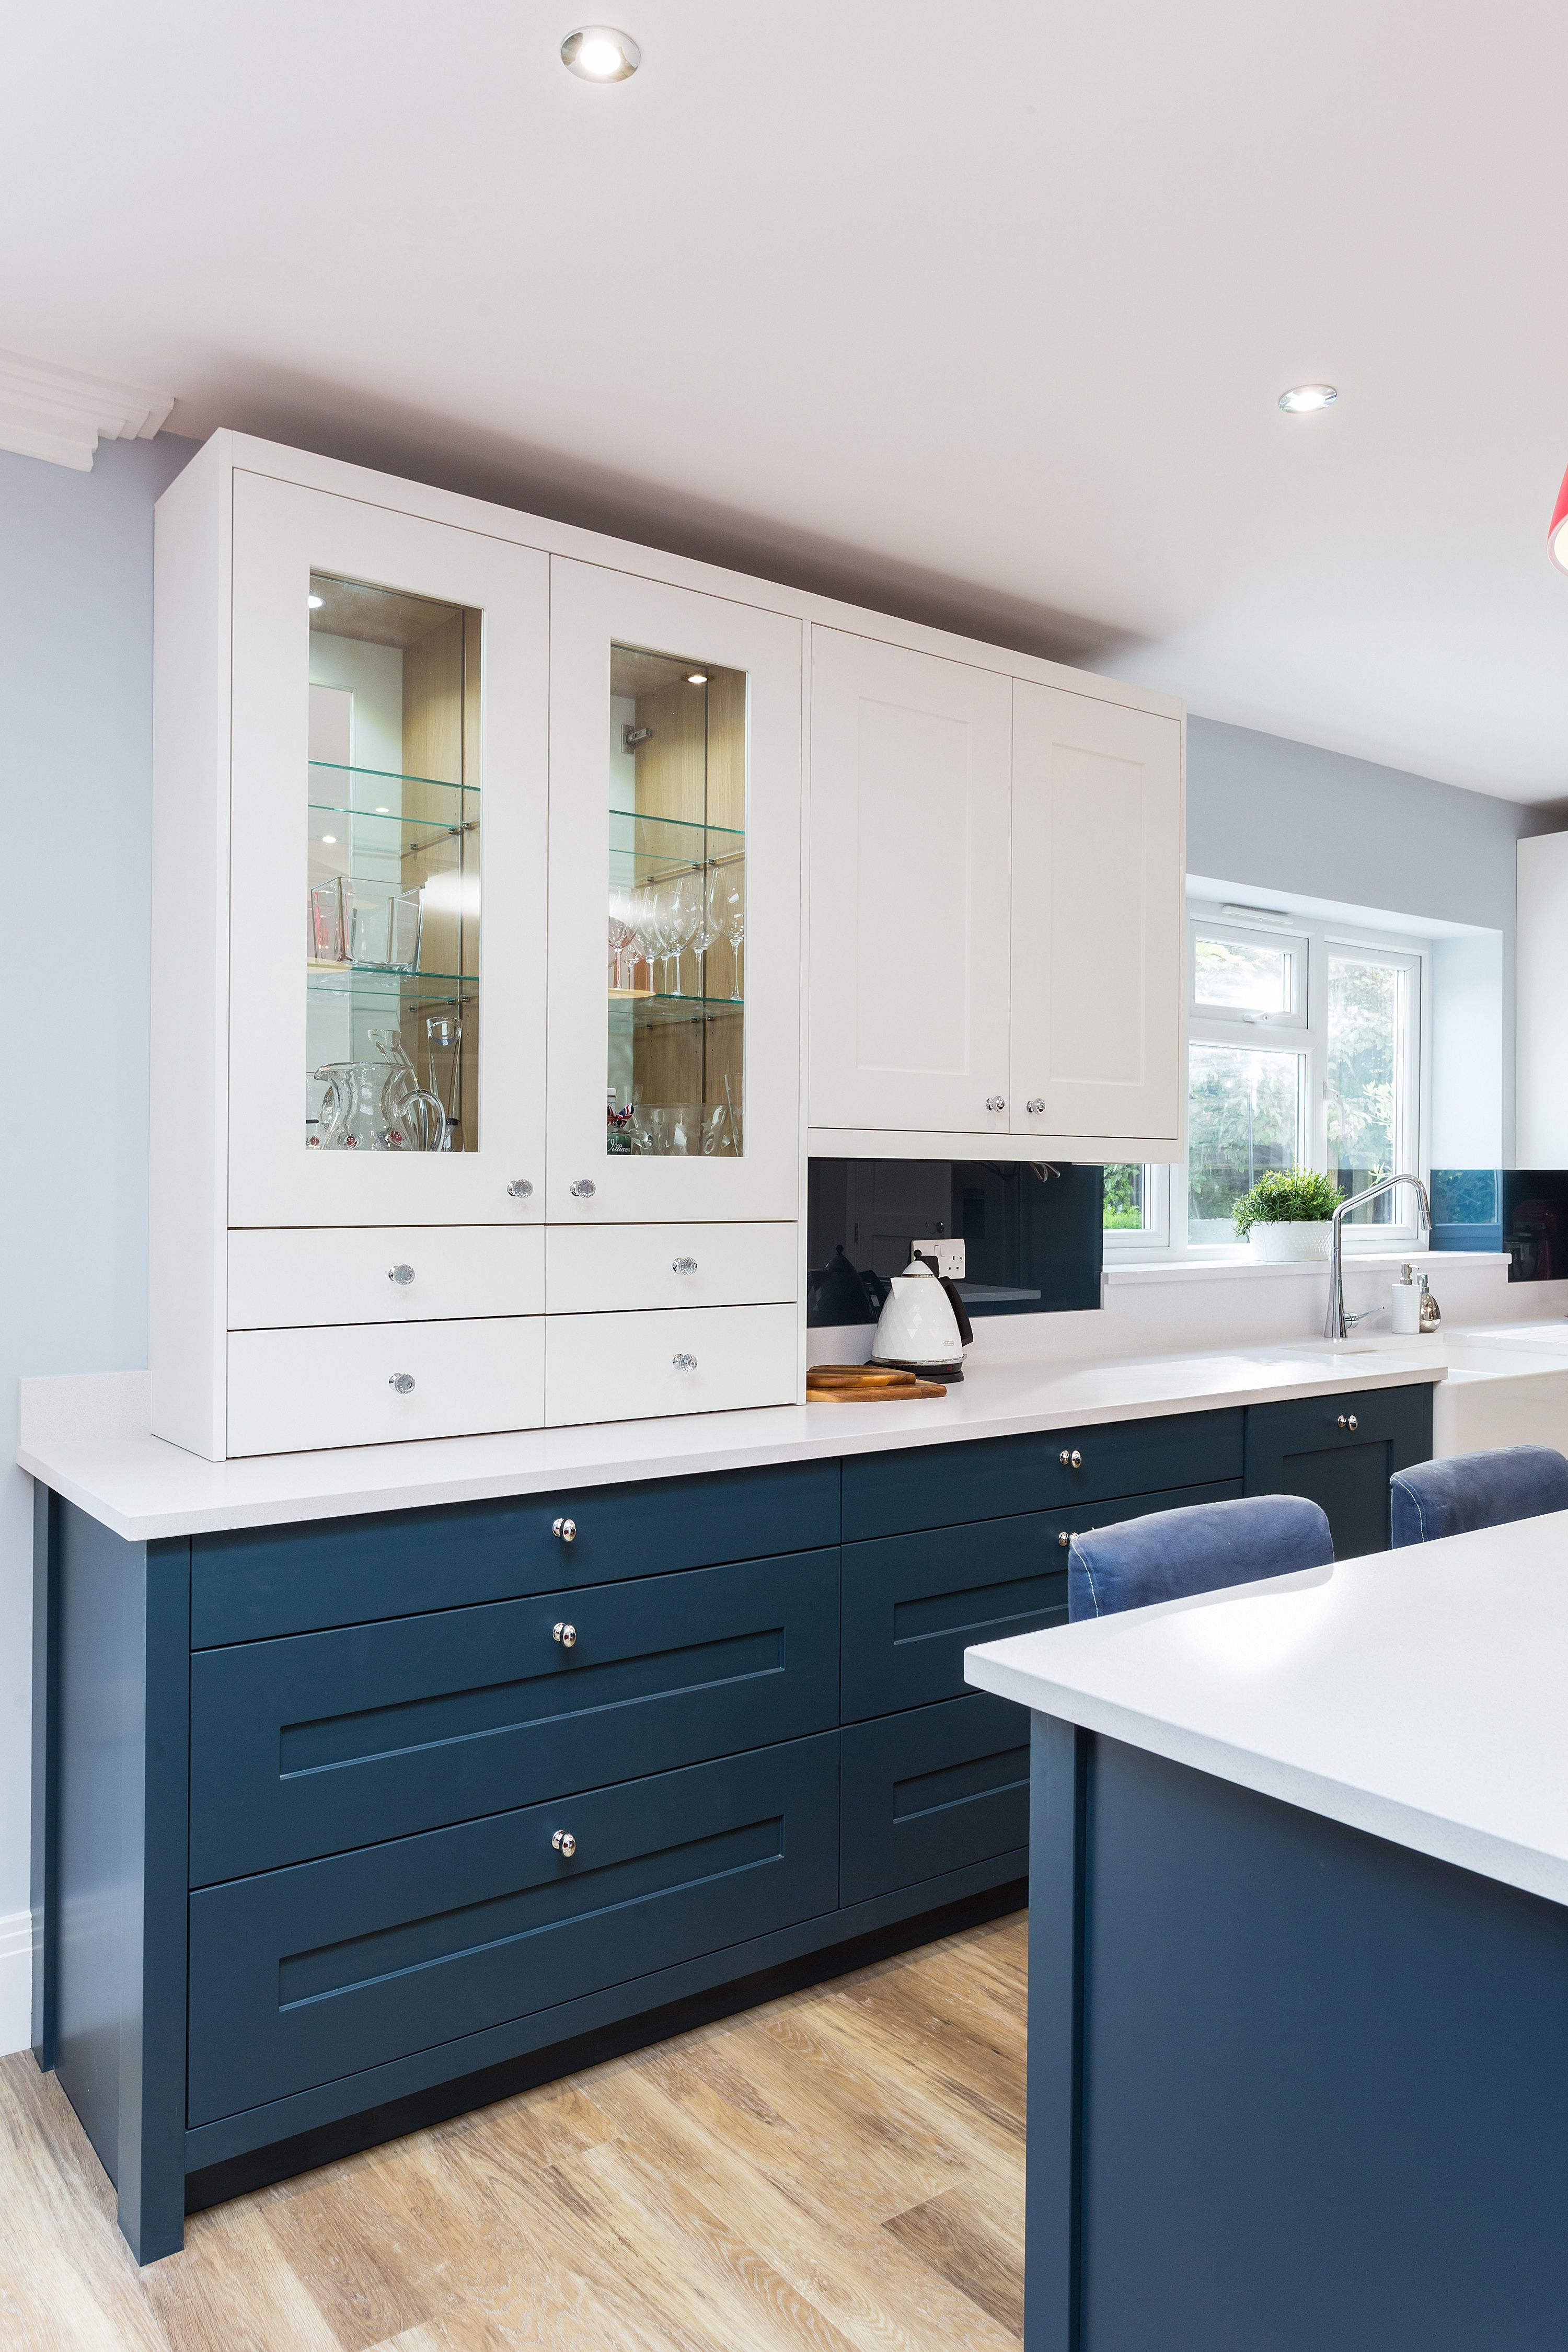 Painted Blue And Chalk Fitzroy In Frame Kitchen With Large Island